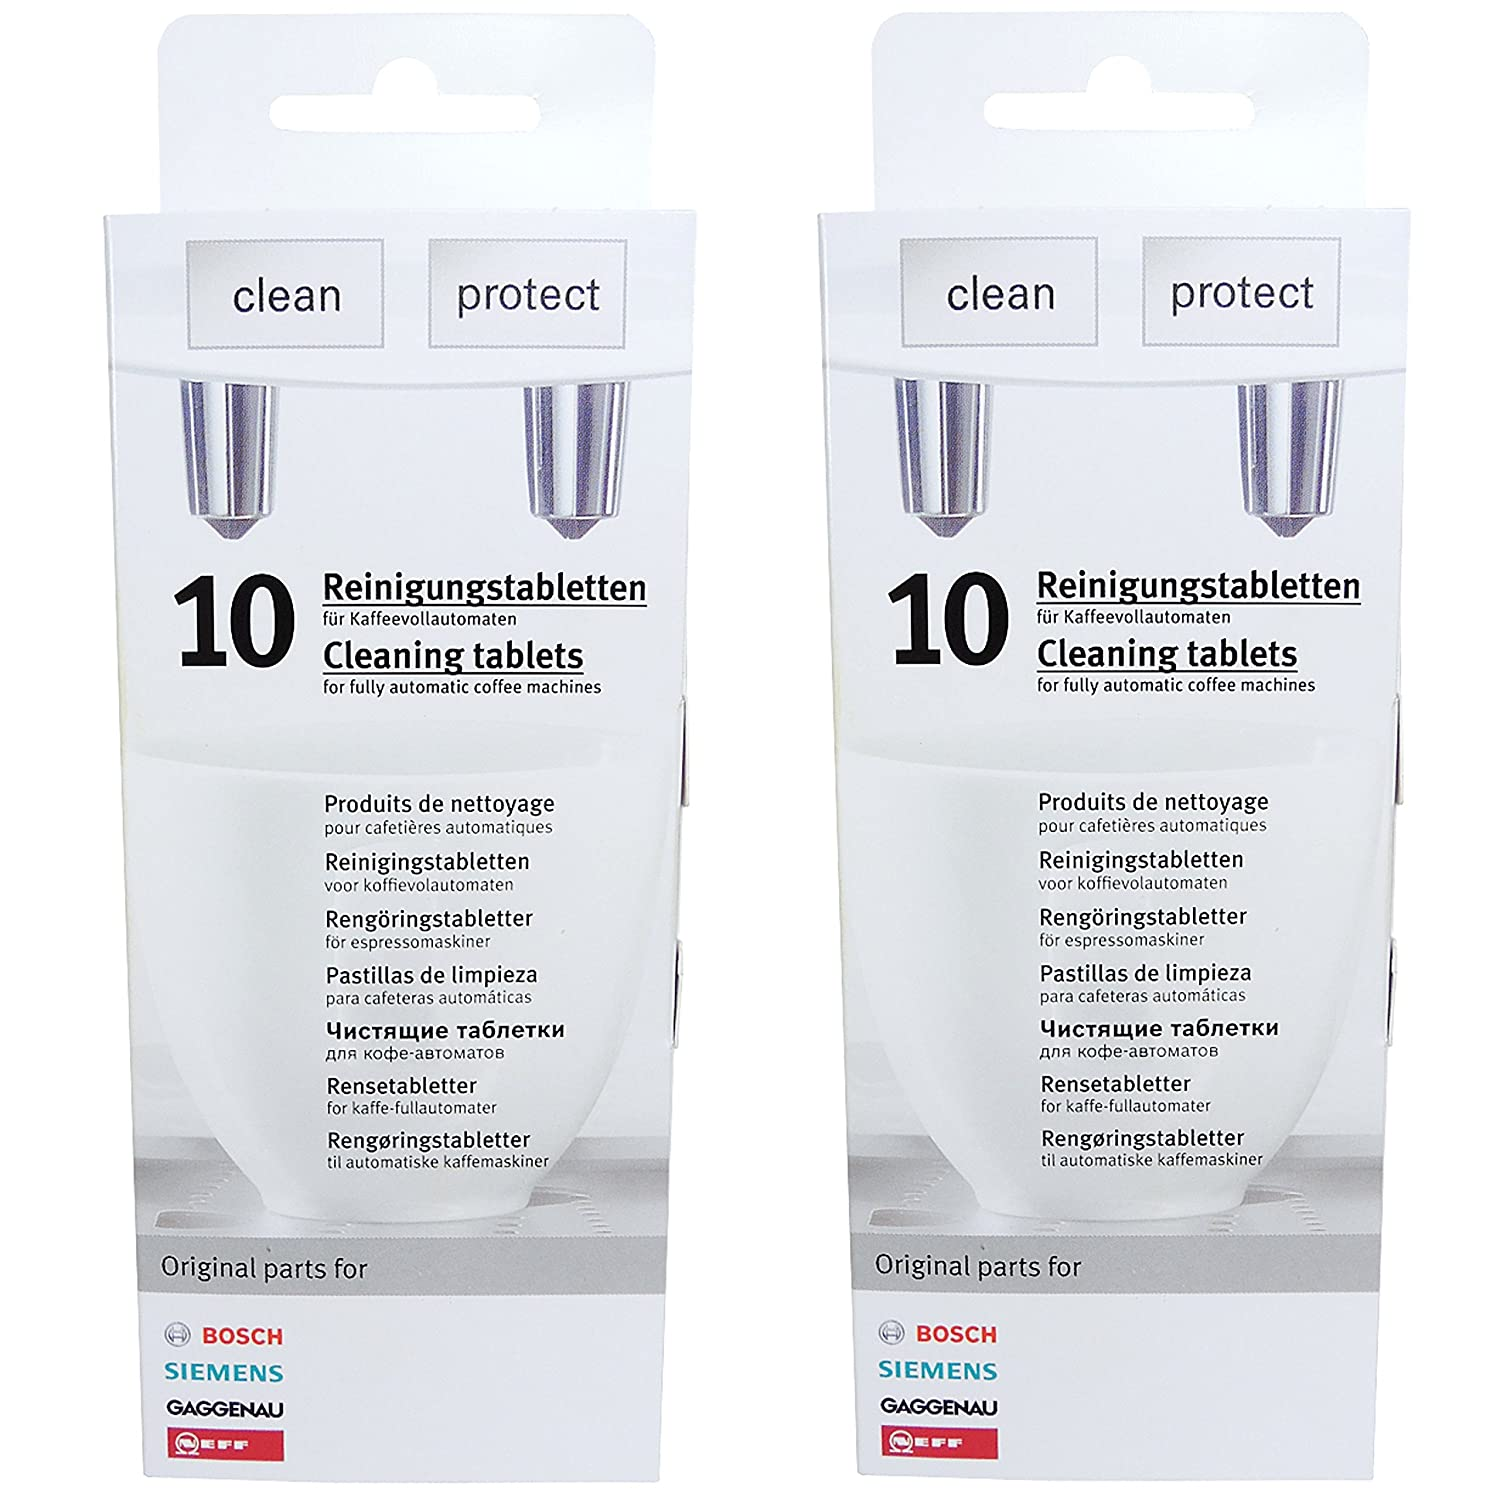 2 Pack of Cleaning Tablets for Coffee Machines Siemens/Bosch/Neff/Gaggenau – 00311769 Replaces TZ60001,310575, TCZ6001